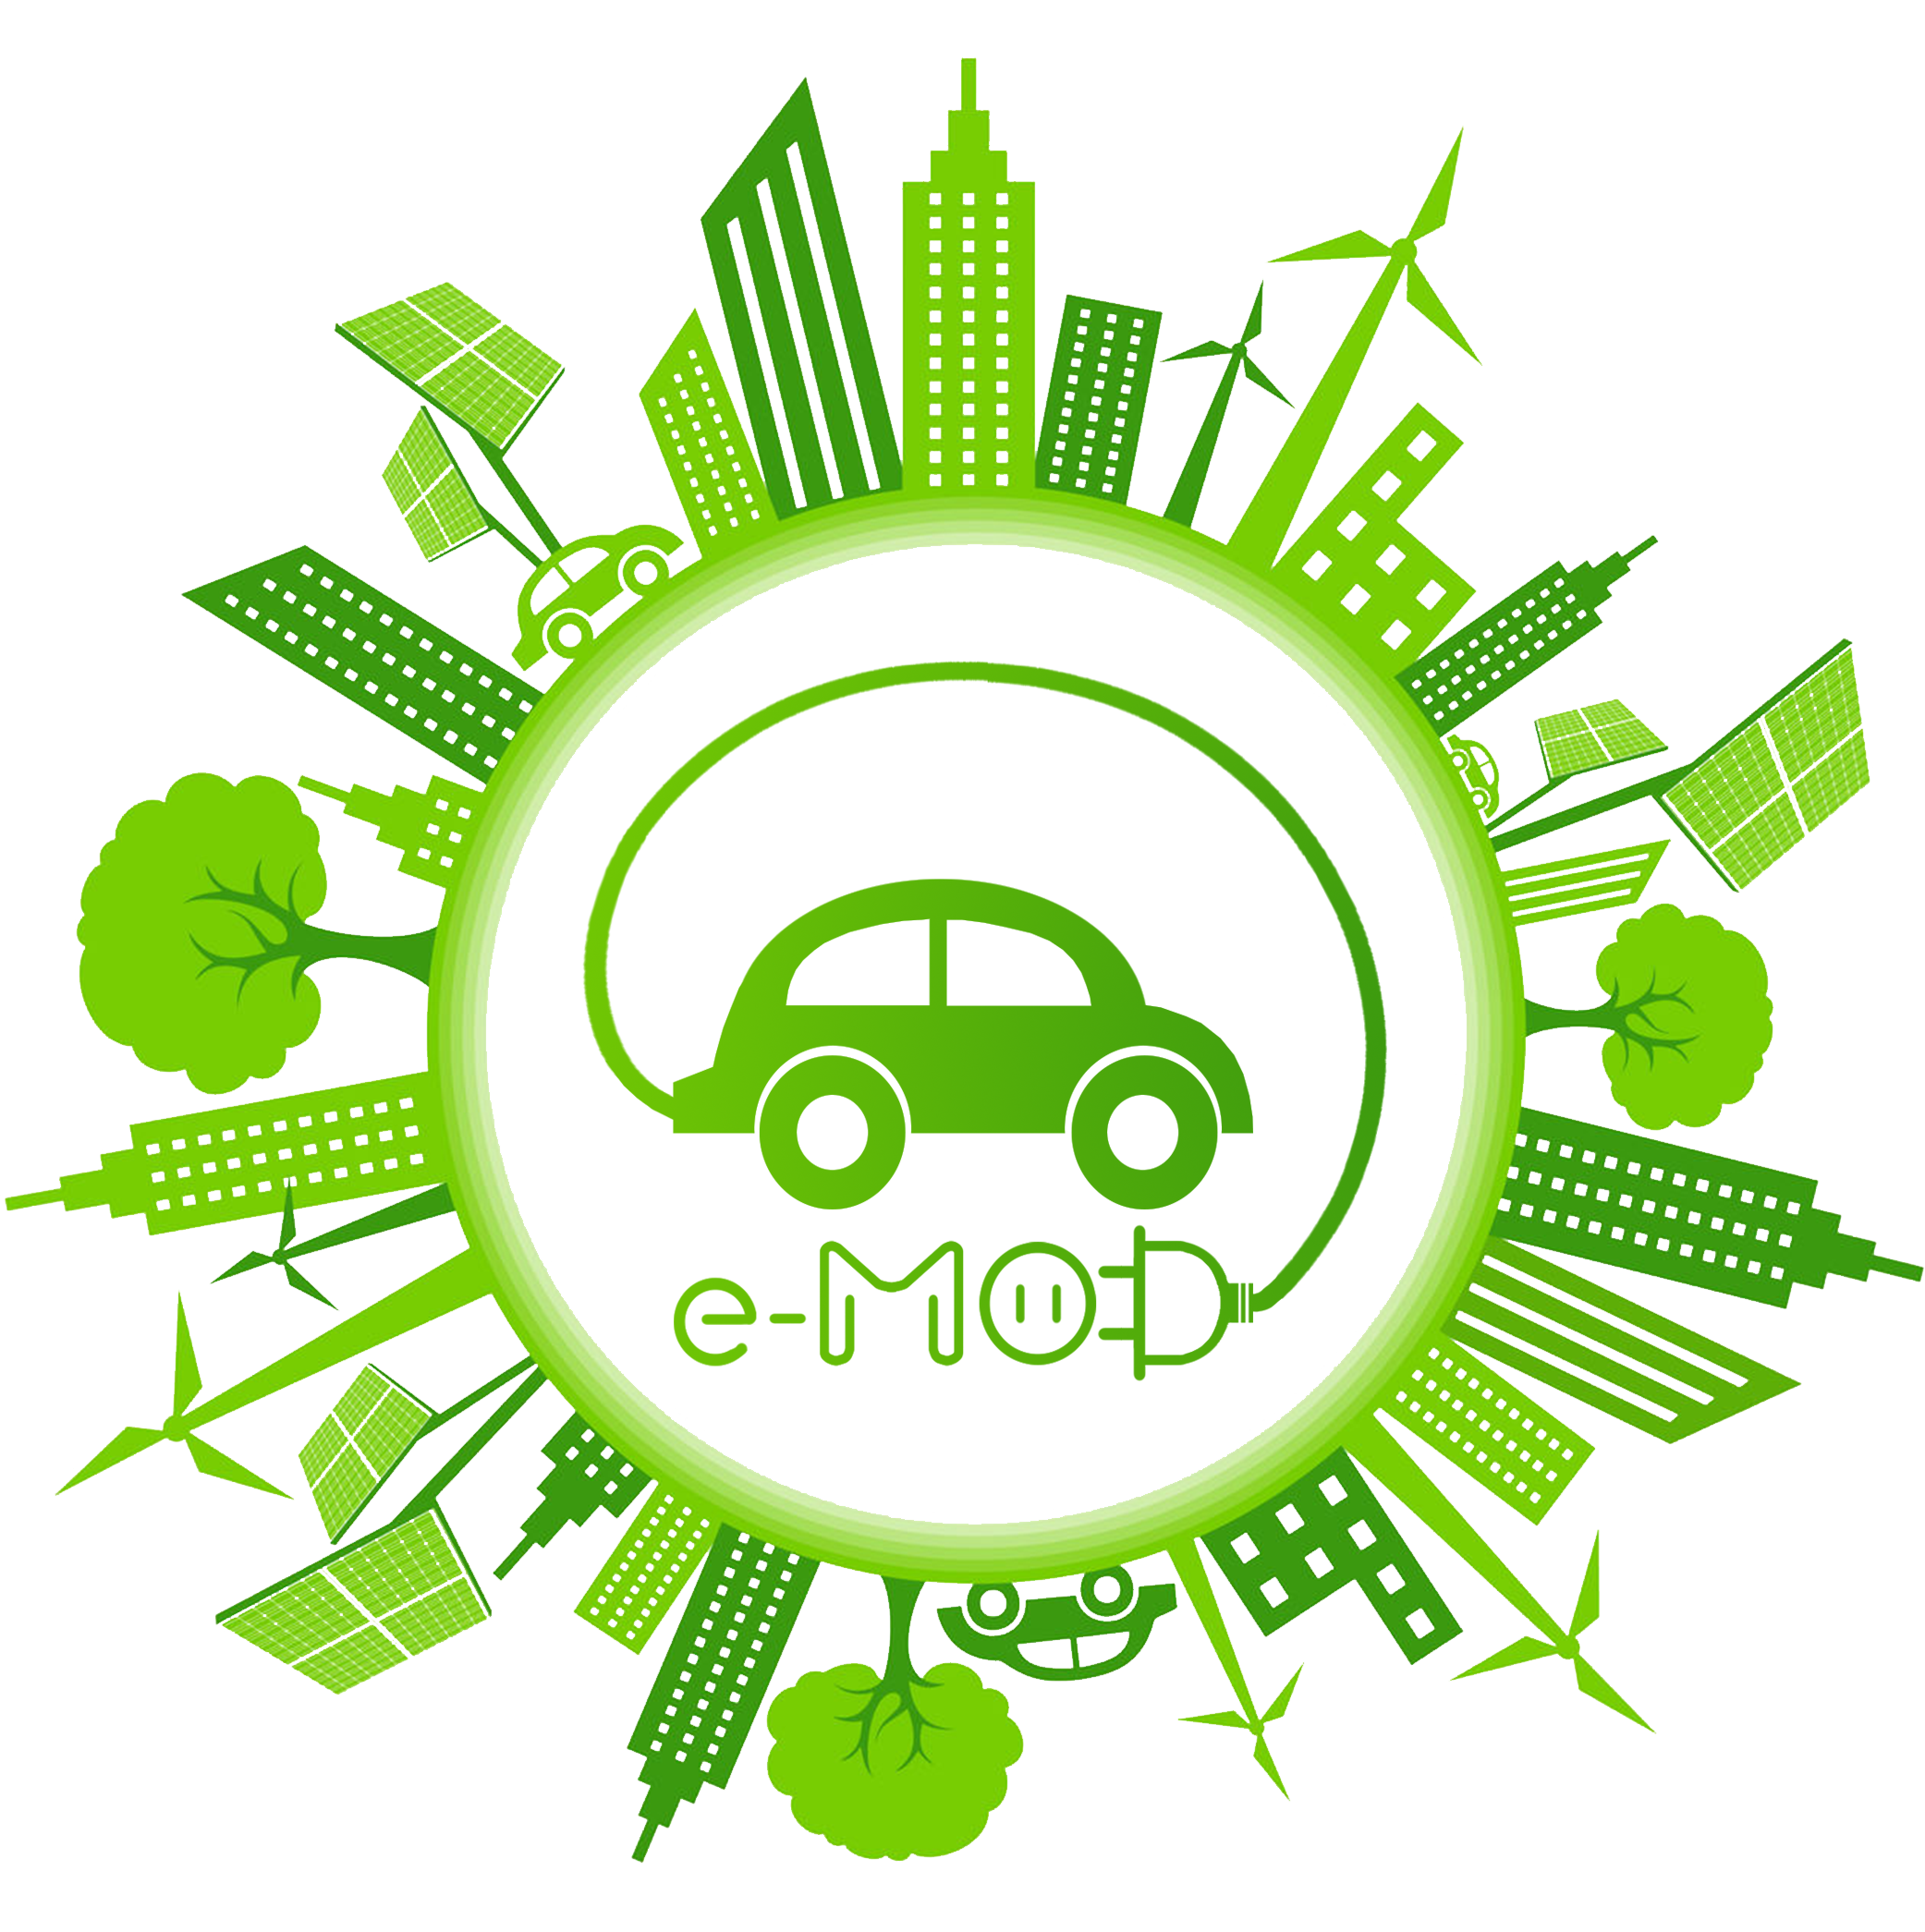 E-MOD: Electric MObility Development in Italy, a multidisciplinary evaluation